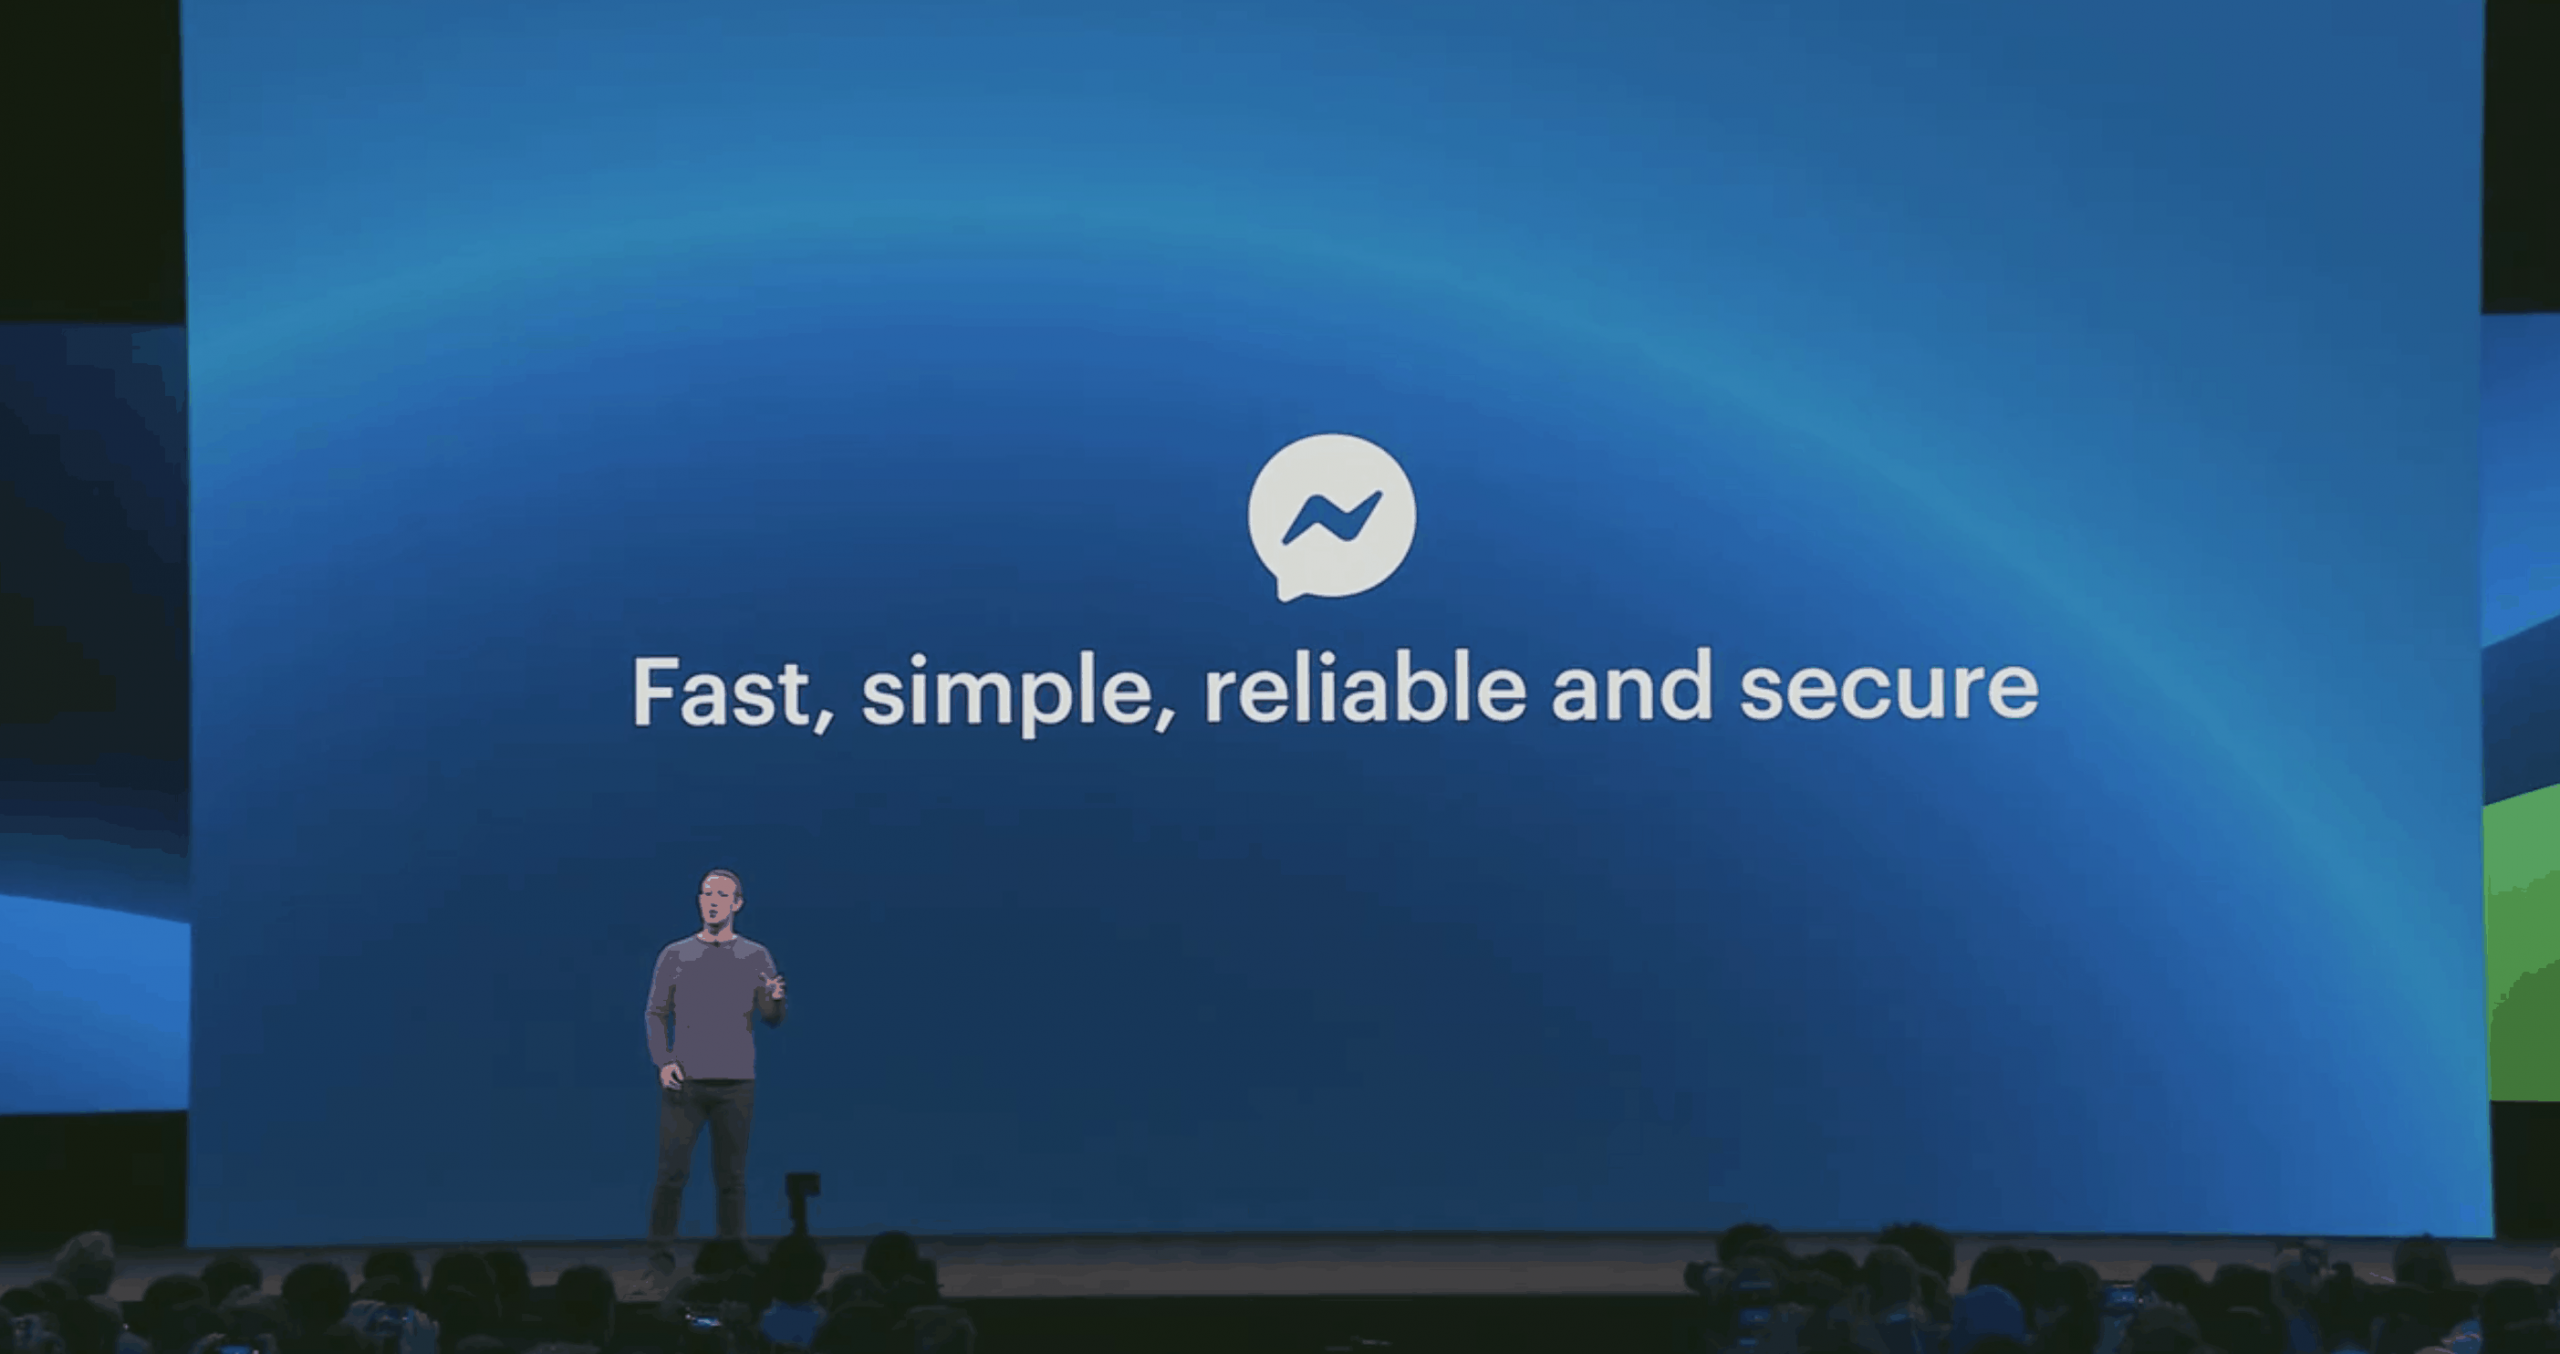 Facebook introduces its new design with Dark Mode for Web and Mobile